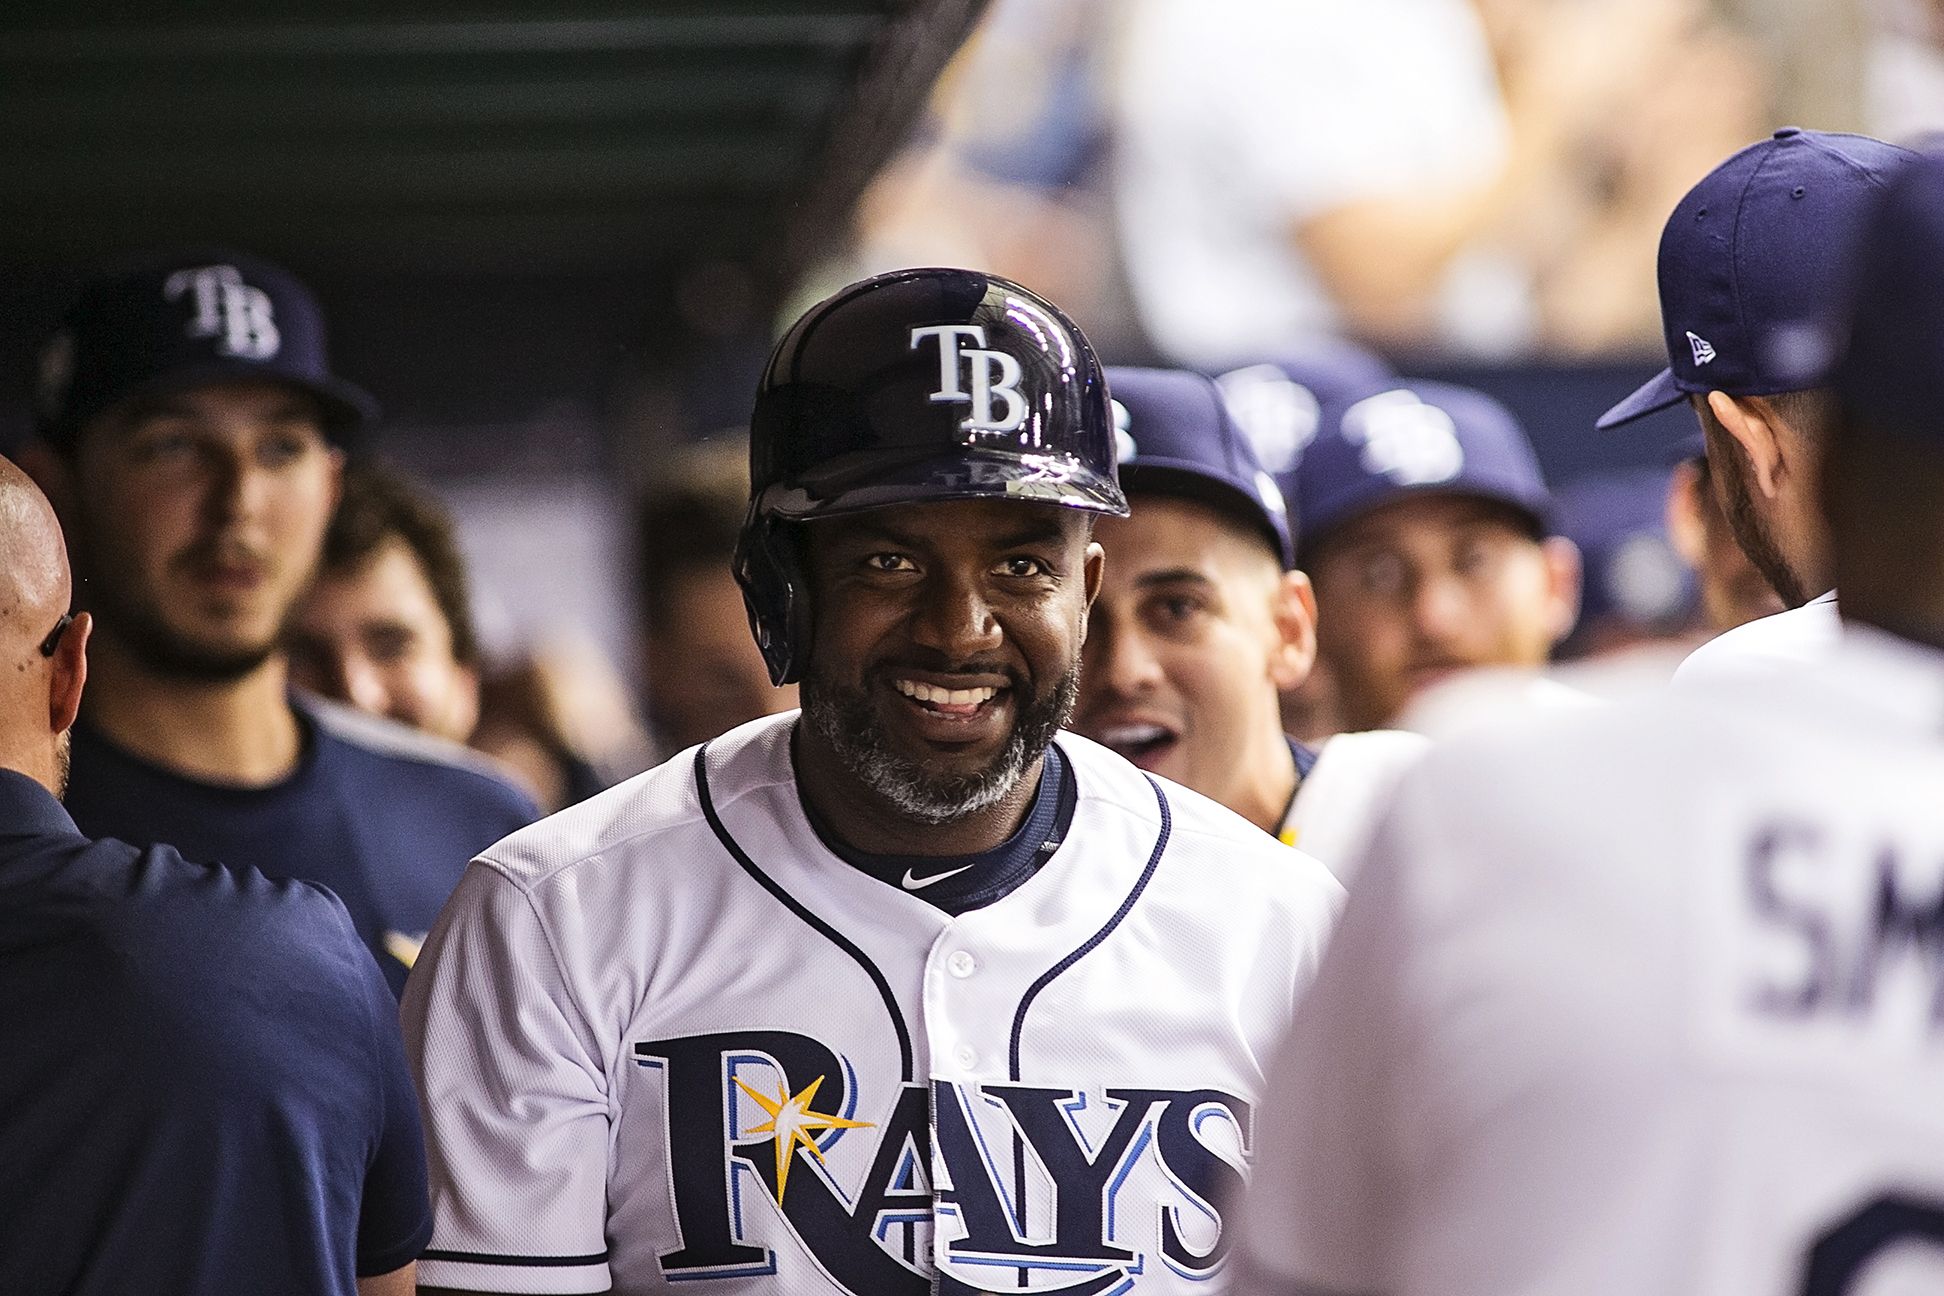 Span's triple made the difference not Rays./CARMEN MANDATO